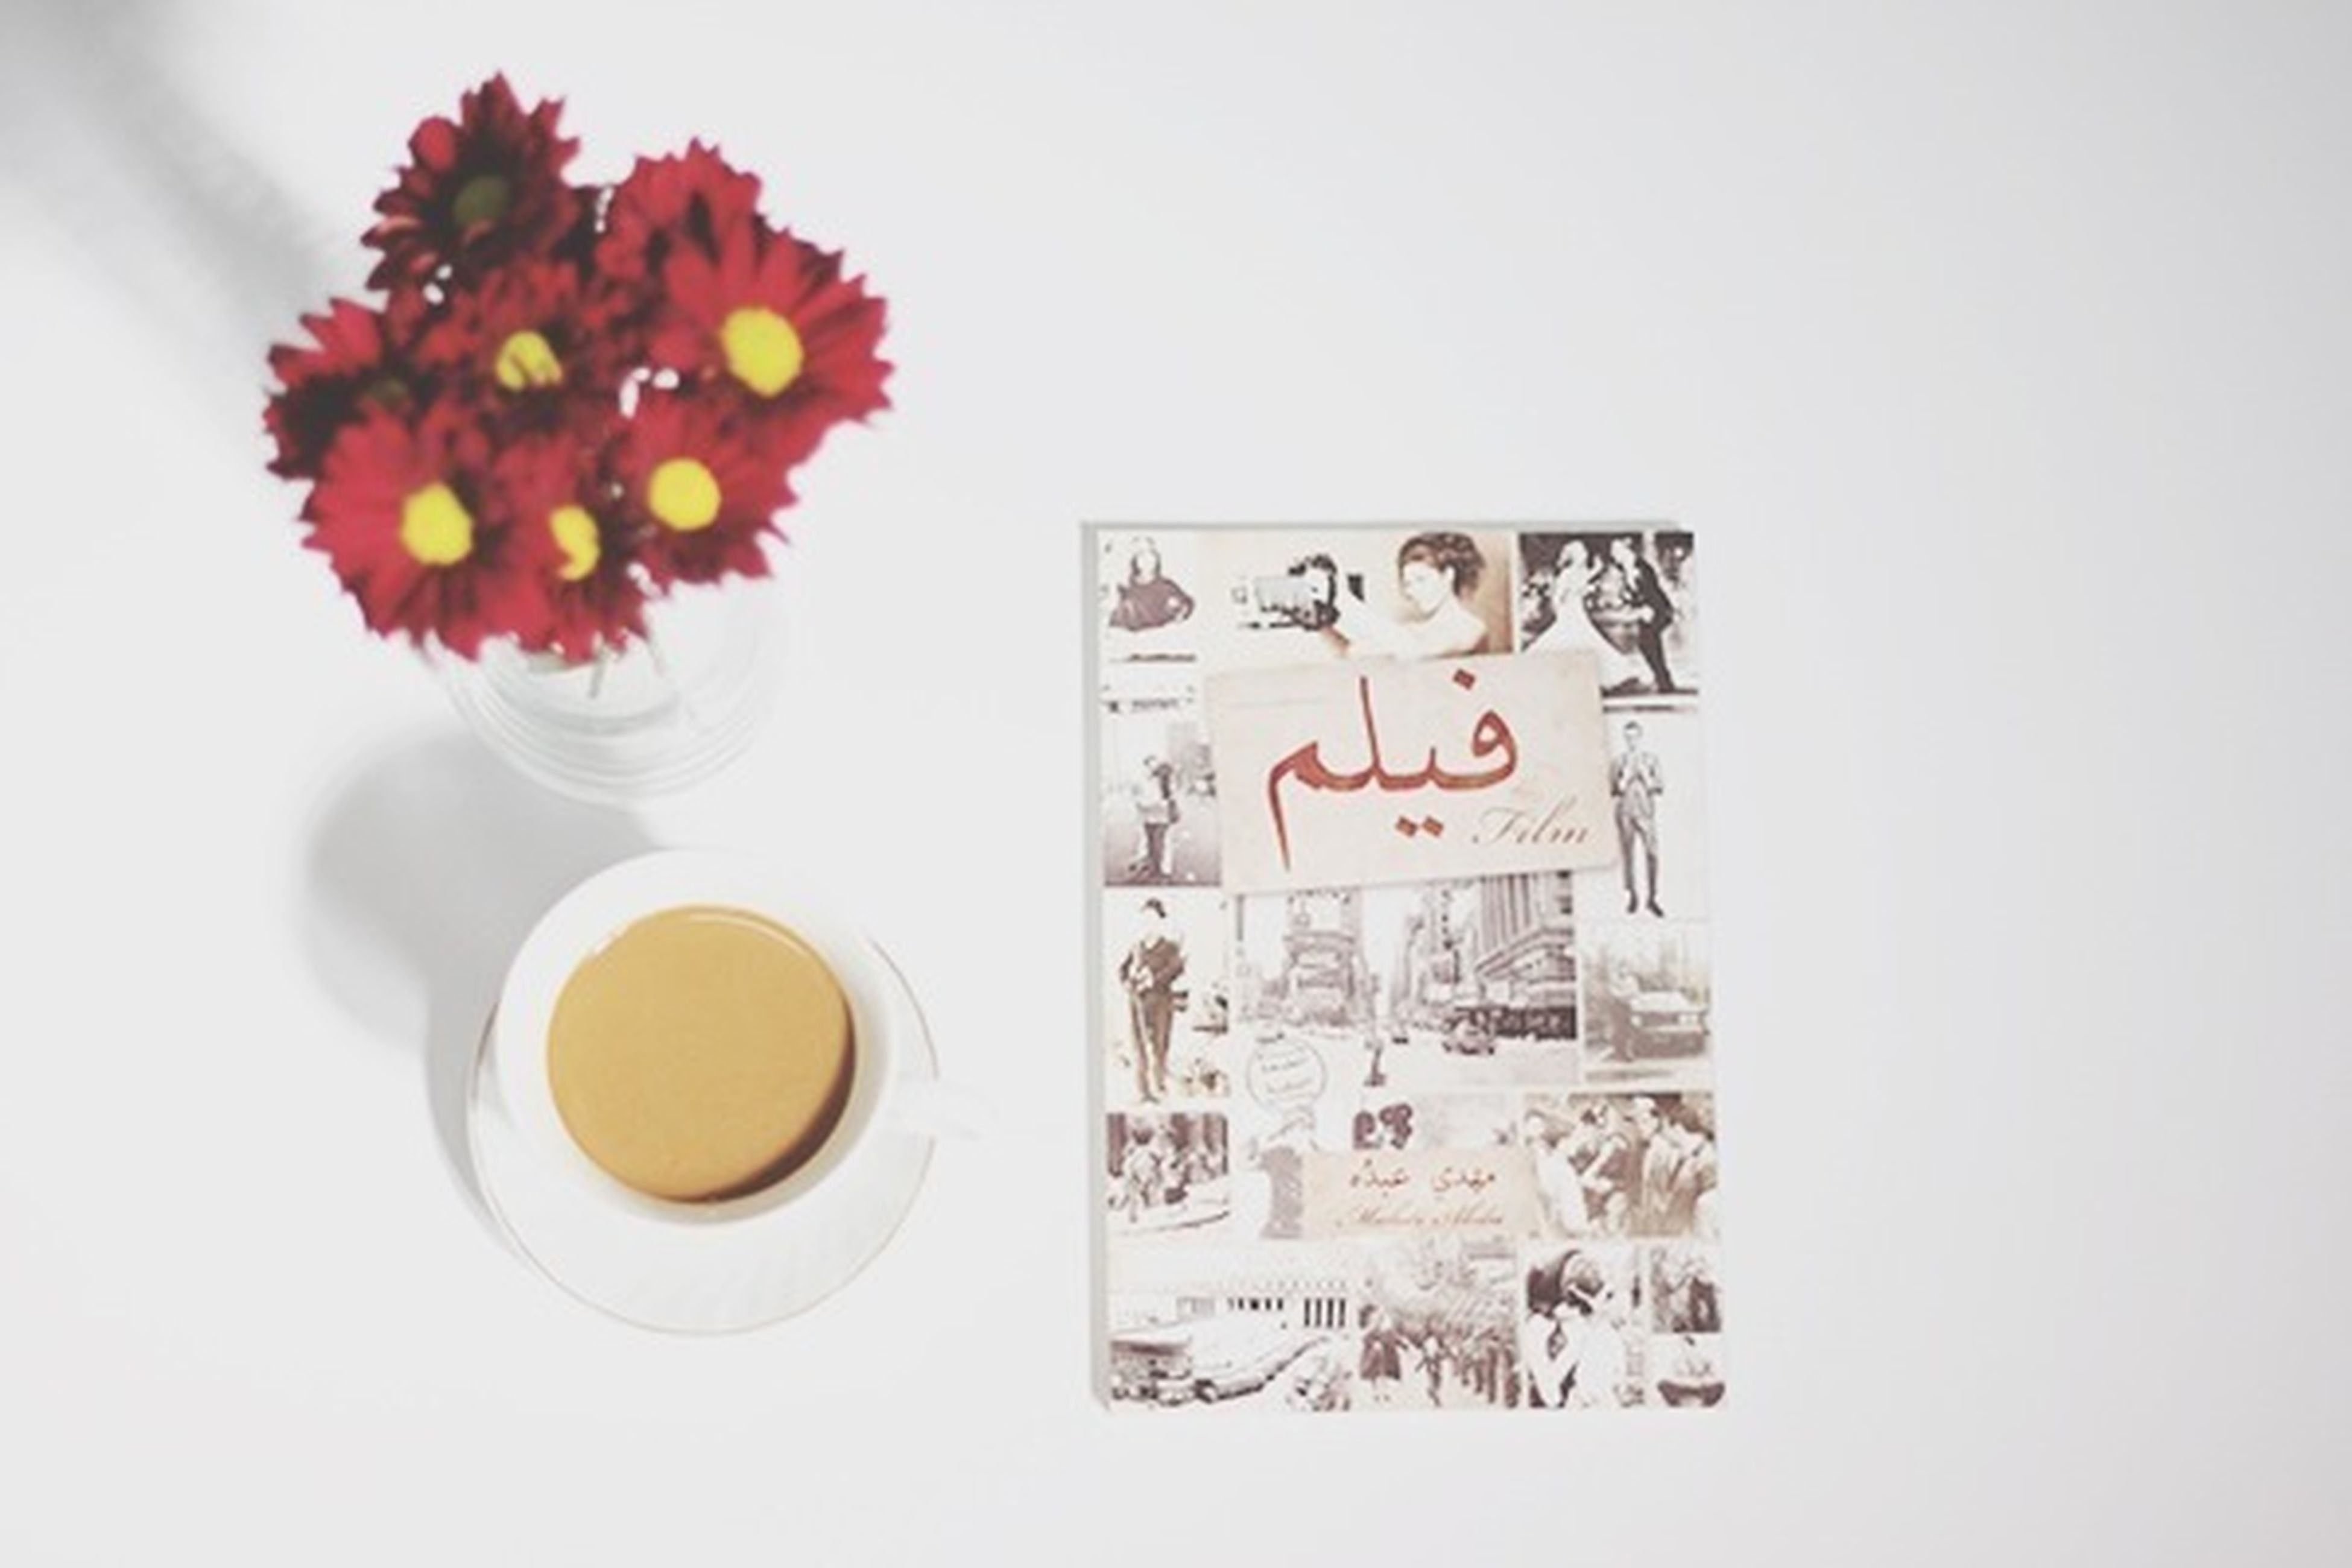 indoors, table, freshness, food and drink, drink, still life, coffee cup, flower, white background, refreshment, studio shot, art, art and craft, cup, creativity, copy space, plate, vase, high angle view, coffee - drink